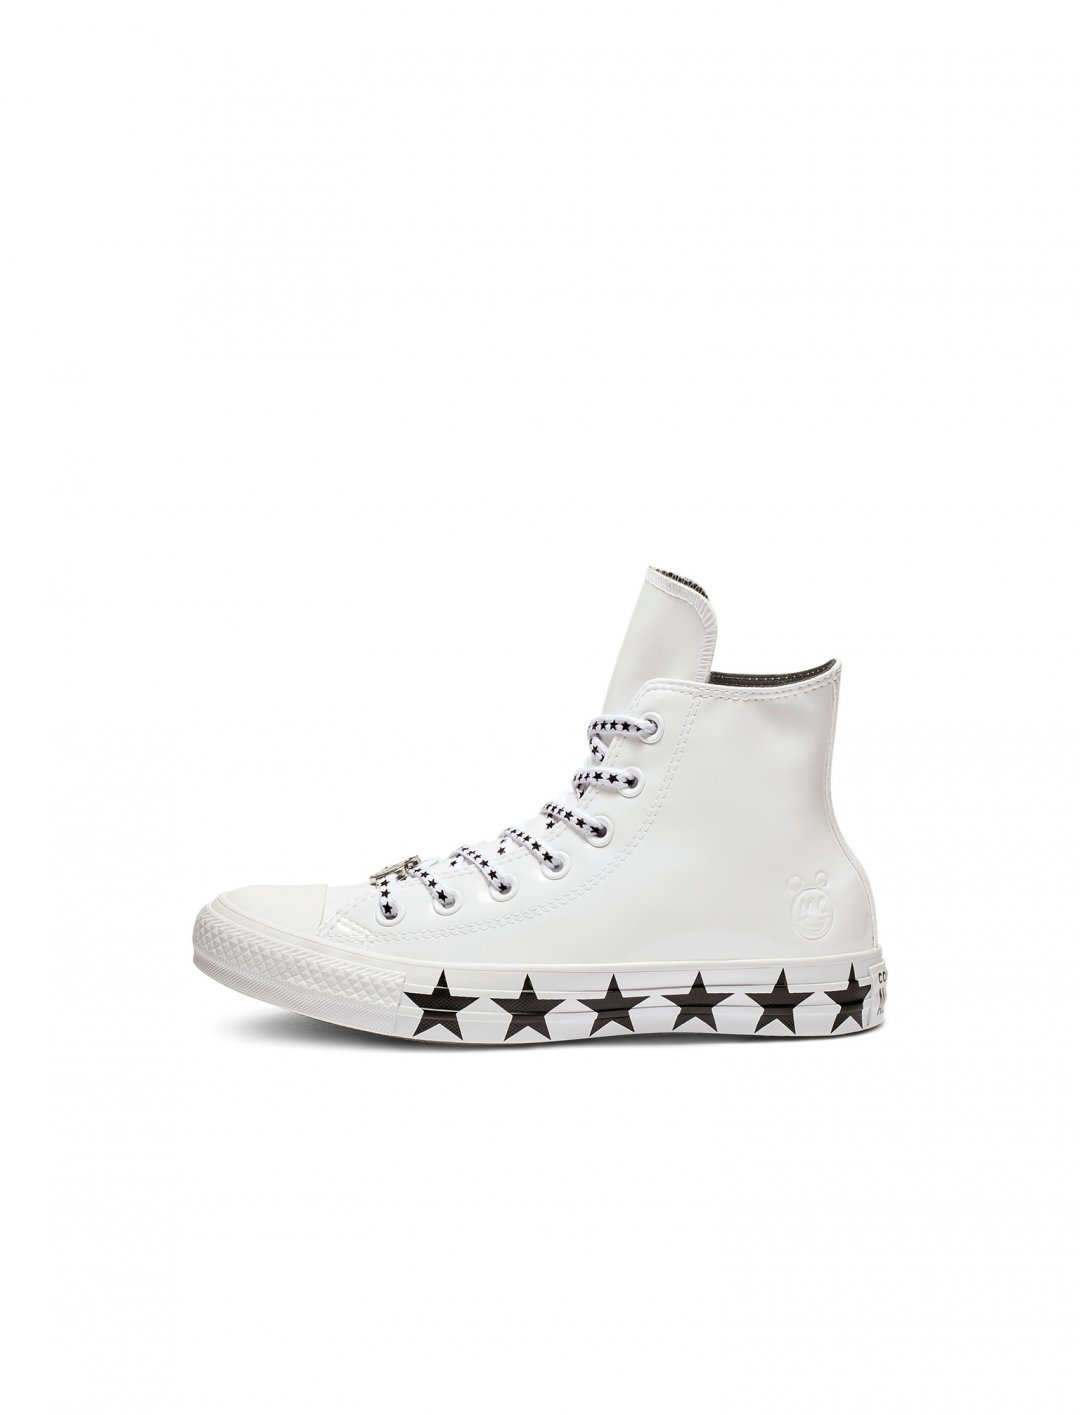 "High Top Trainers {""id"":12,""product_section_id"":1,""name"":""Shoes"",""order"":12} Miley Cyrus x Converse"